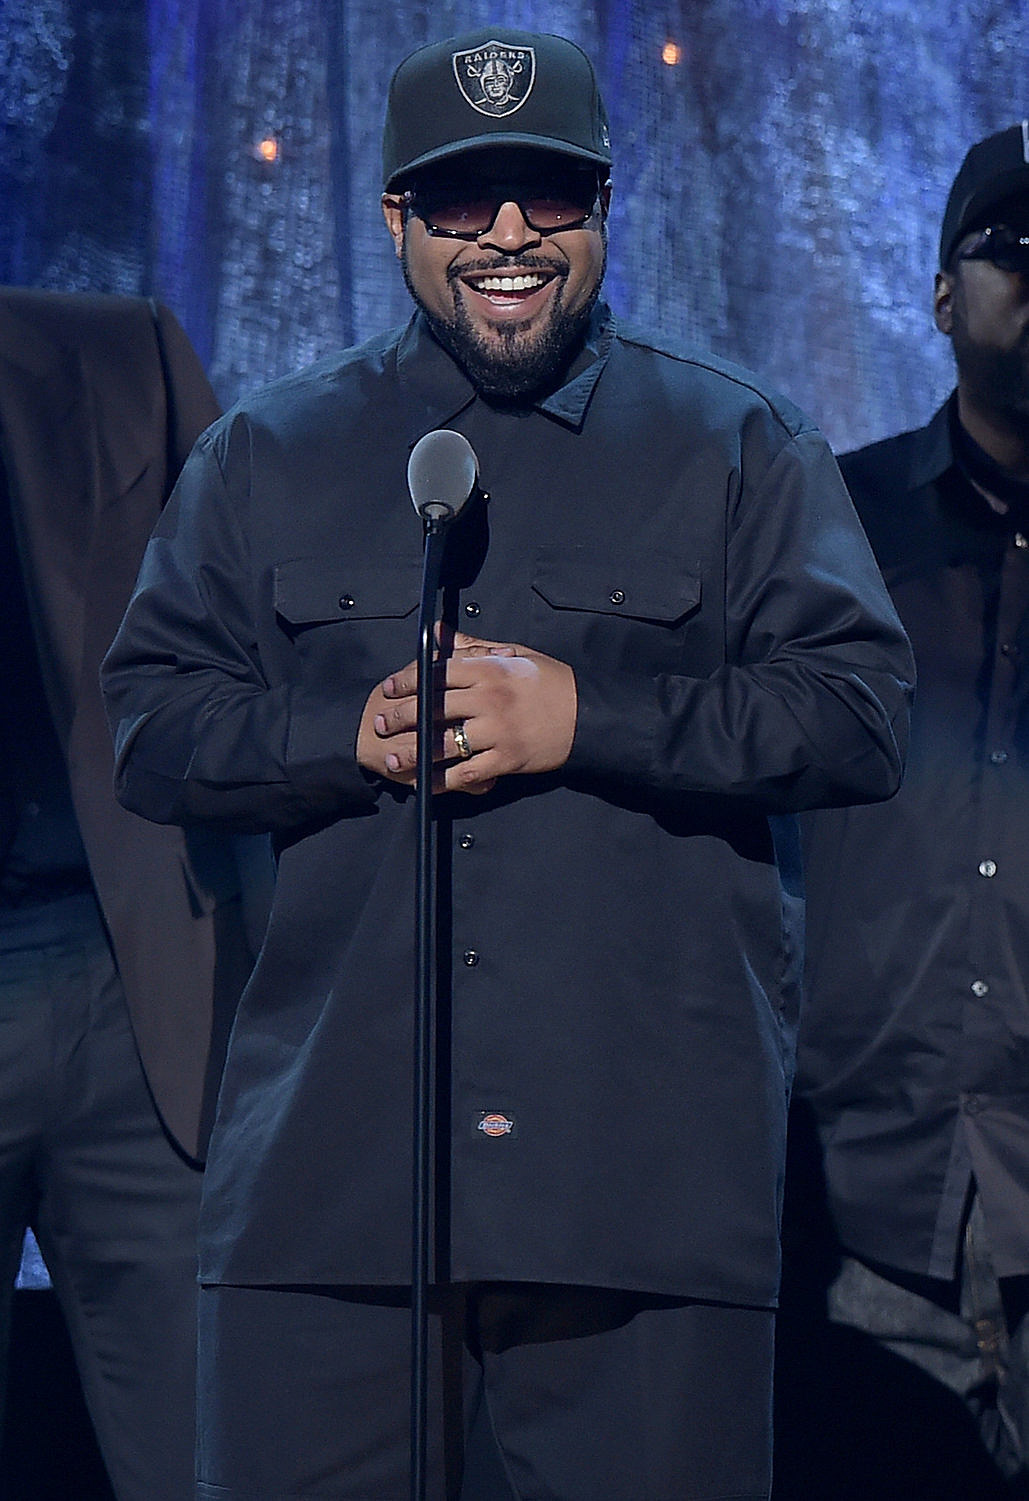 Ice Cube to Receive Star on Hollywood's Walk of Fame, Invited to Join Academy of Motion Picture Arts and Sciences news